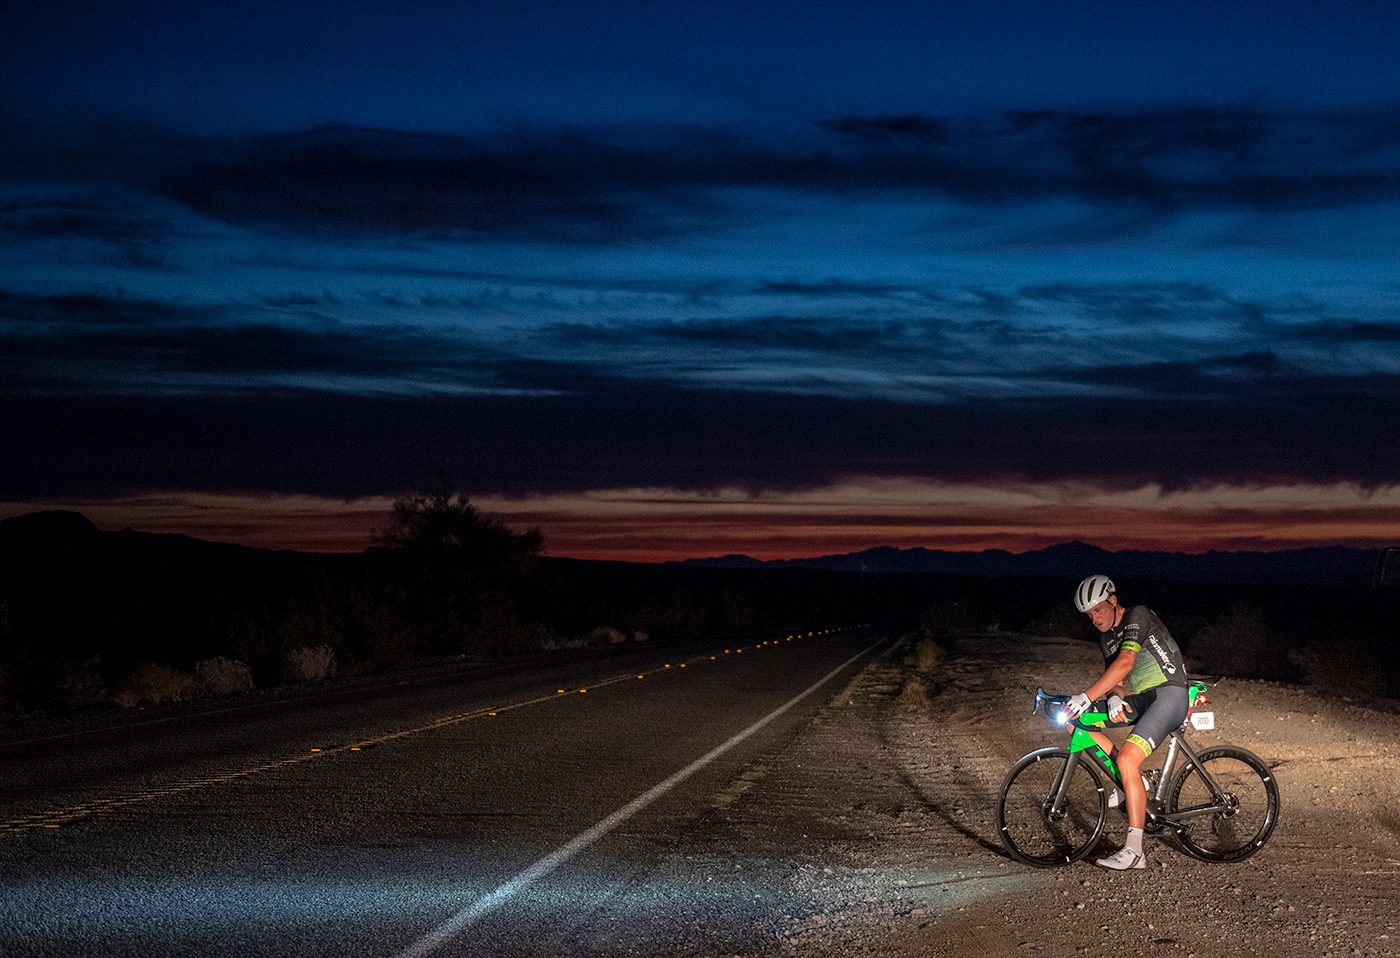 If cancer and getting hit by a truck can't stop James Golding, who'll stop him winning Race Across America? - Cycling Weekly